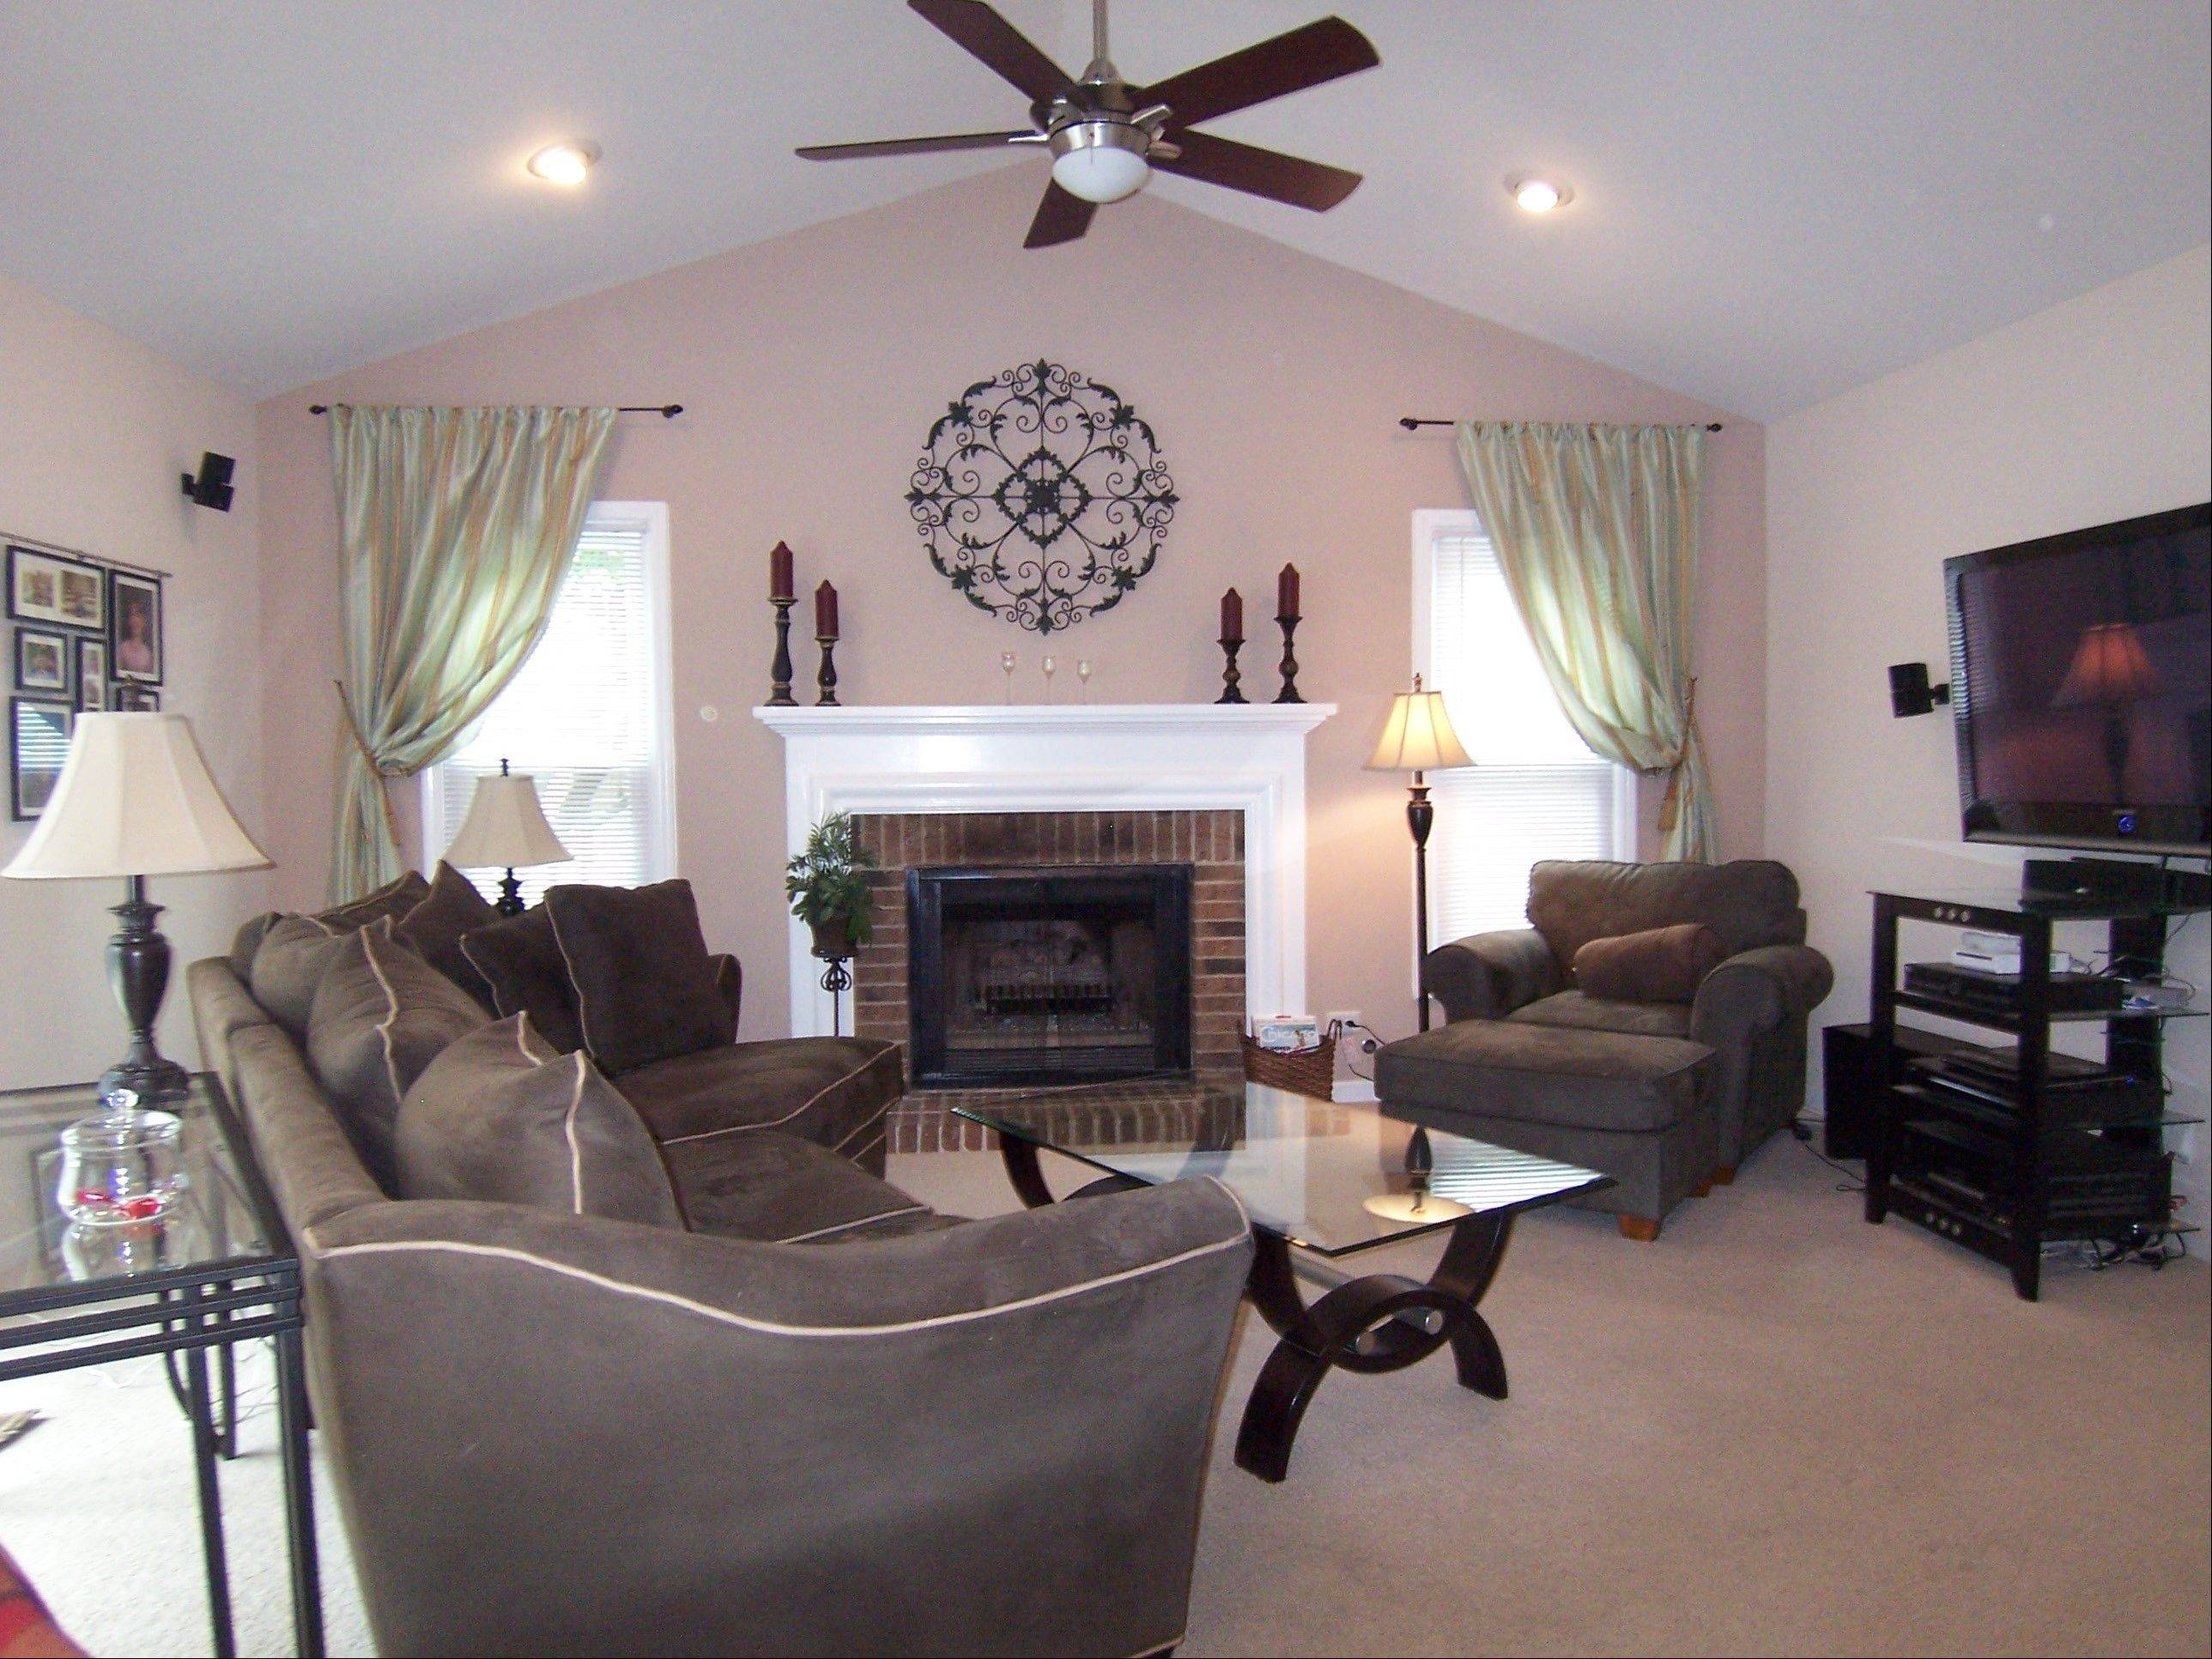 The family room features a vaulted ceiling.